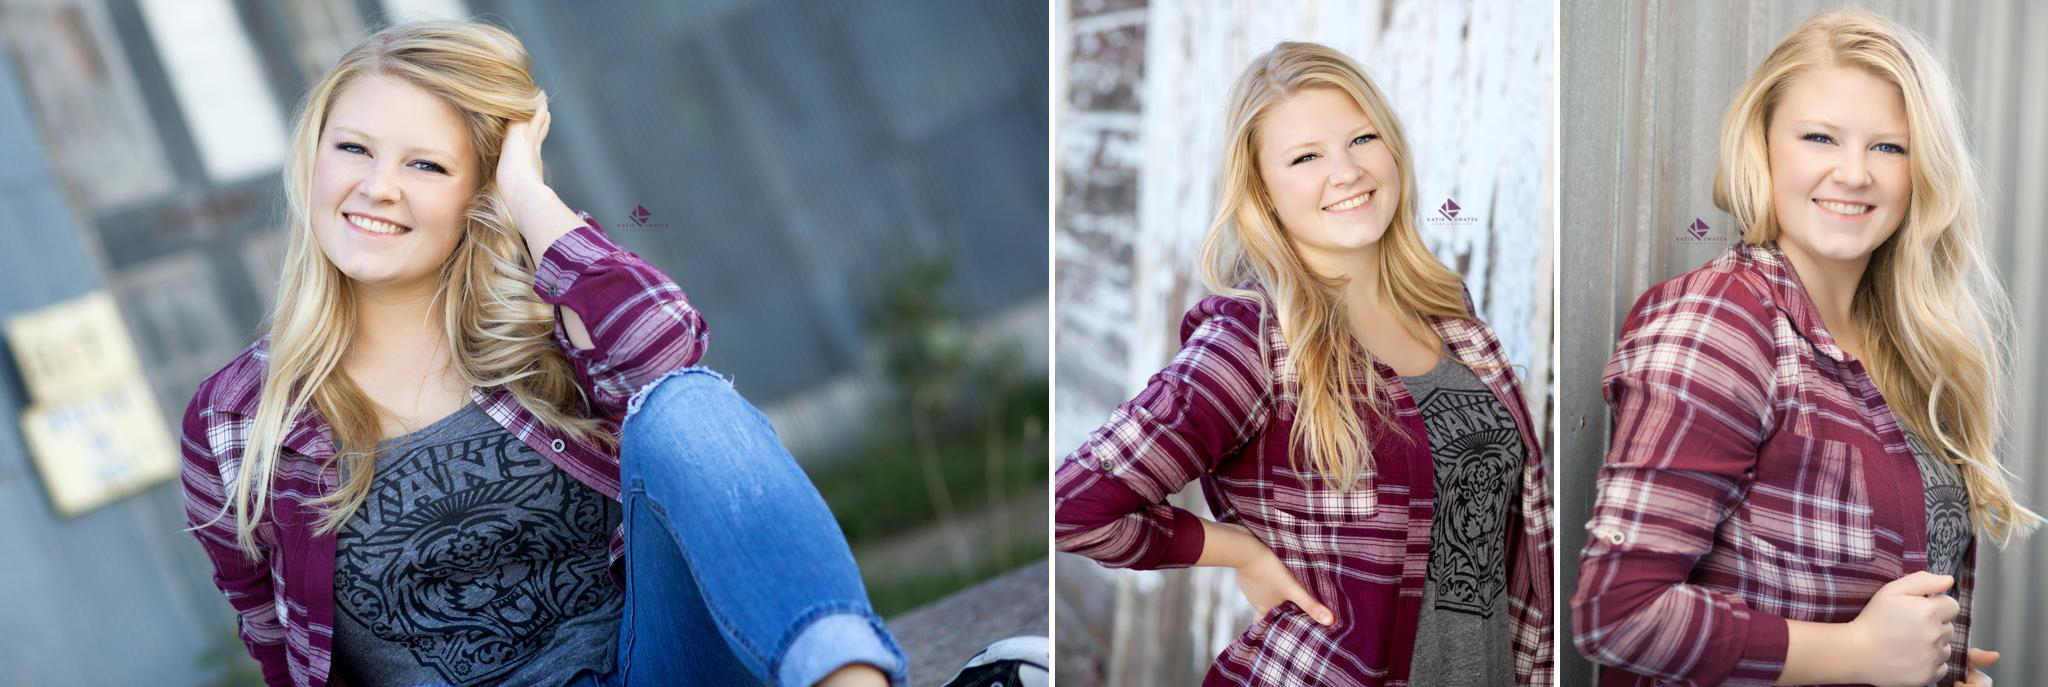 Blonde senior girl in a purple plaid shirt posing in front of corrigated steel